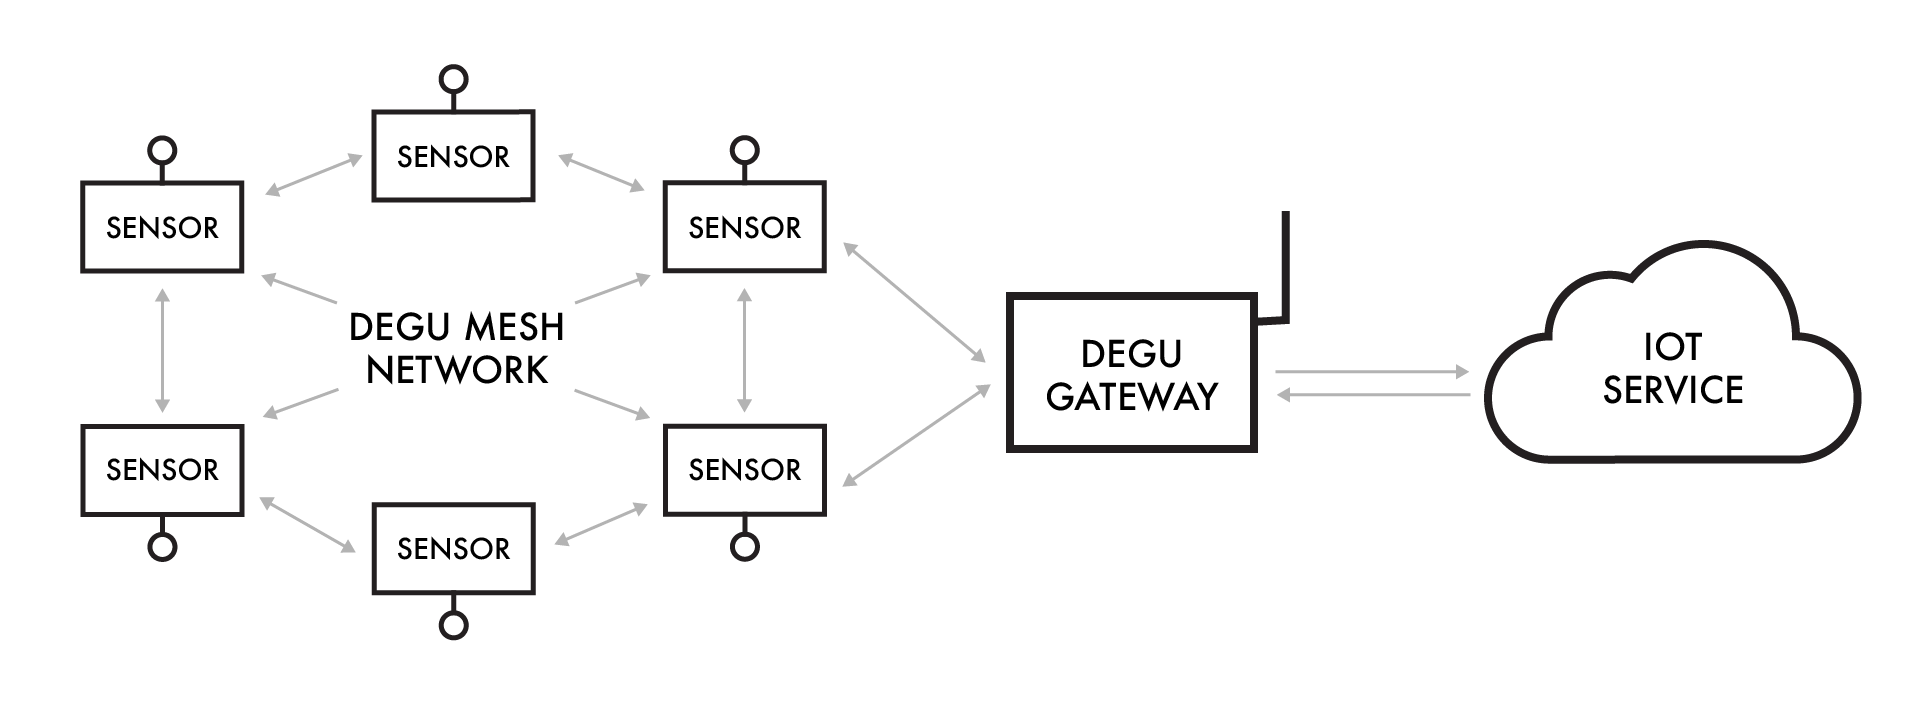 Degu-System-Overview.png